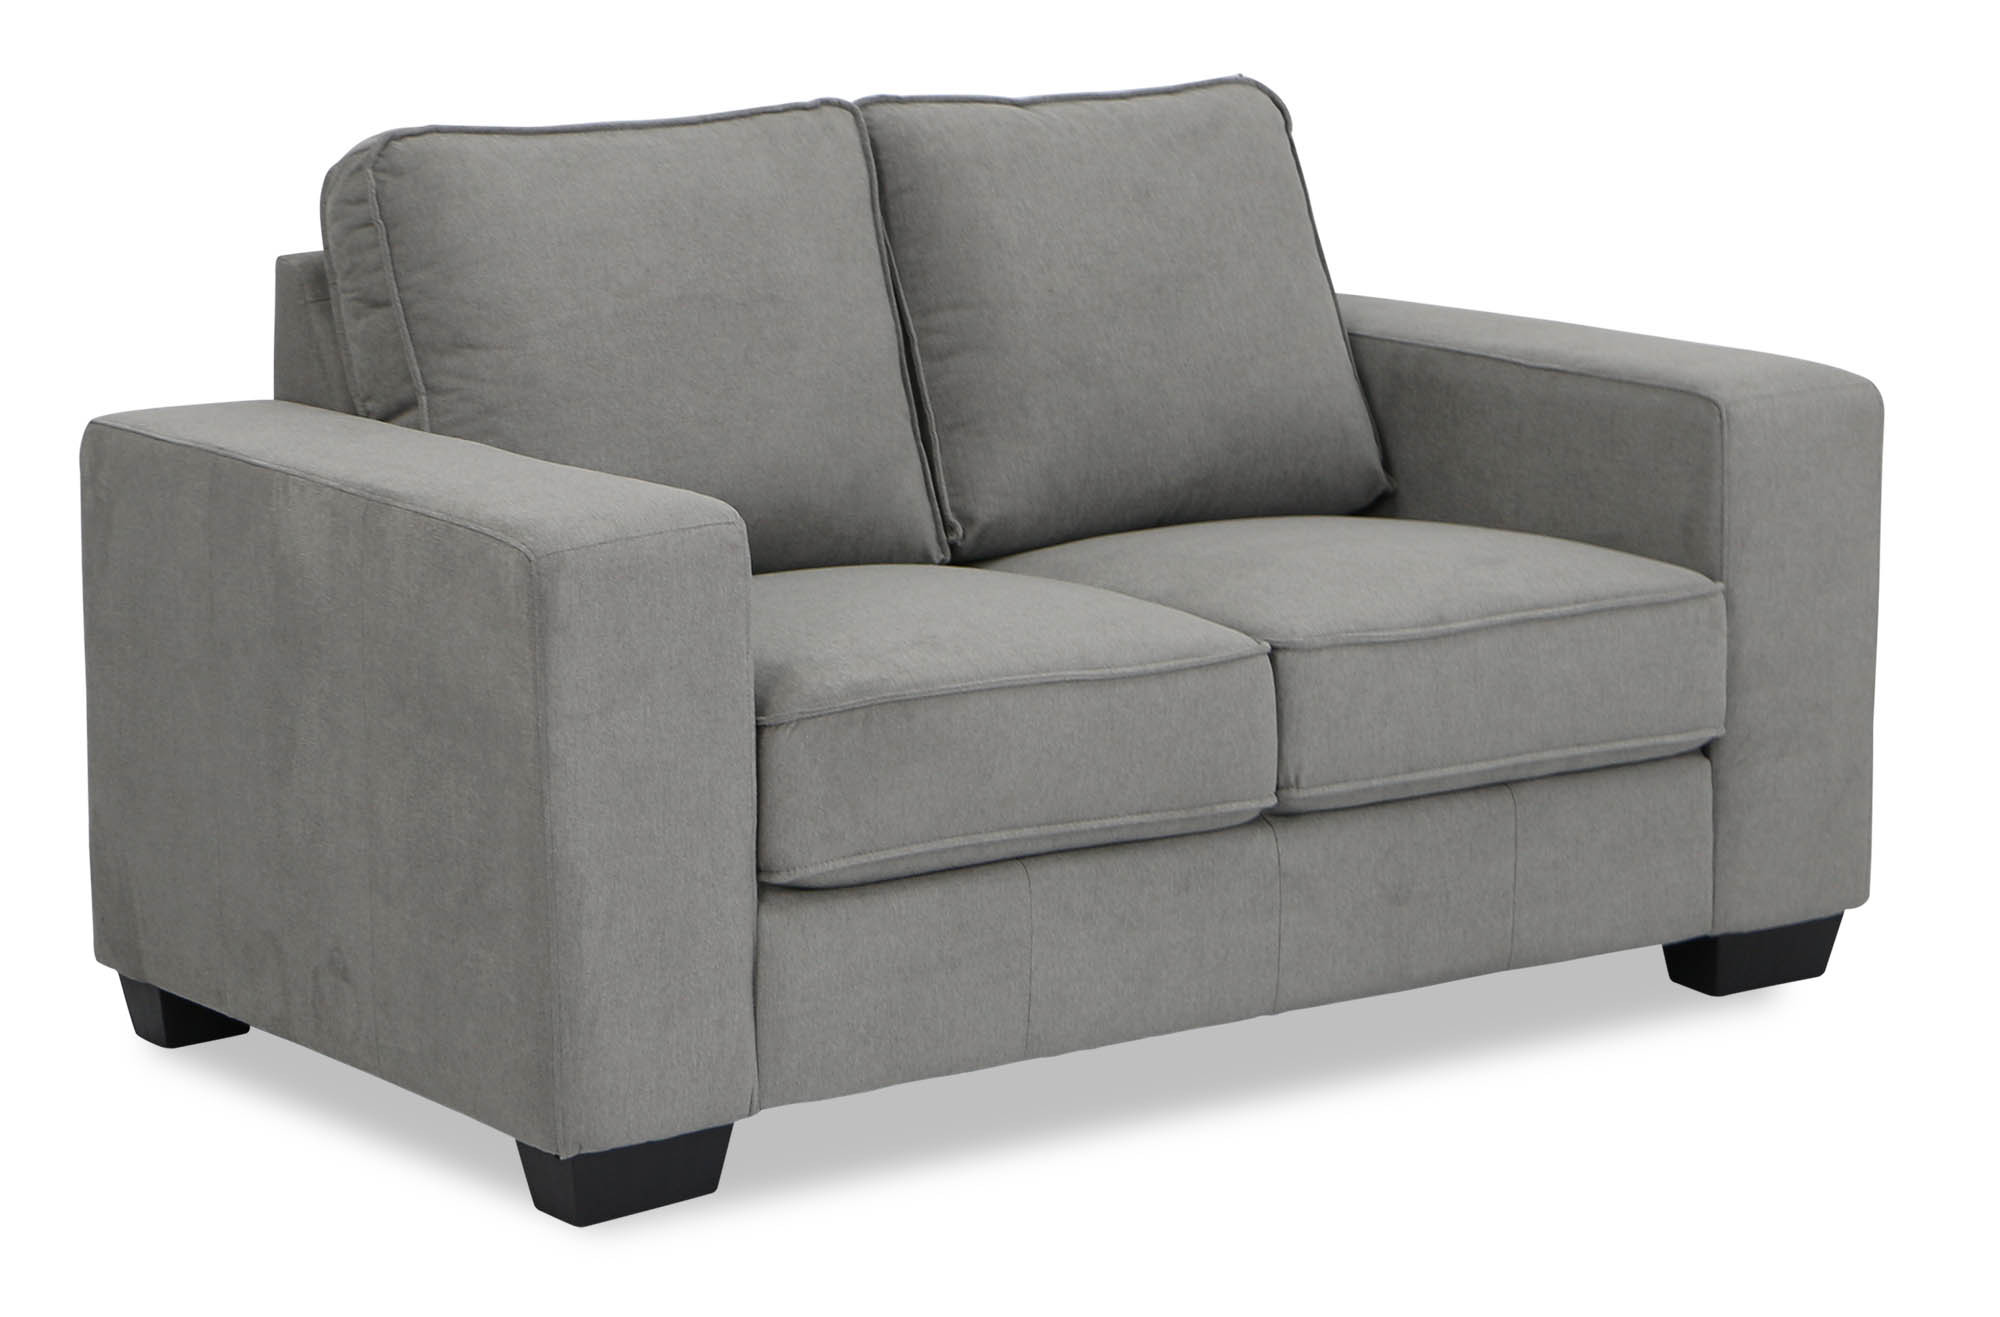 verona 2 seater sofa gray furniture home d cor fortytwo rh fortytwo sg 2 seater sofa grey leather 2 seater grey sofa bed